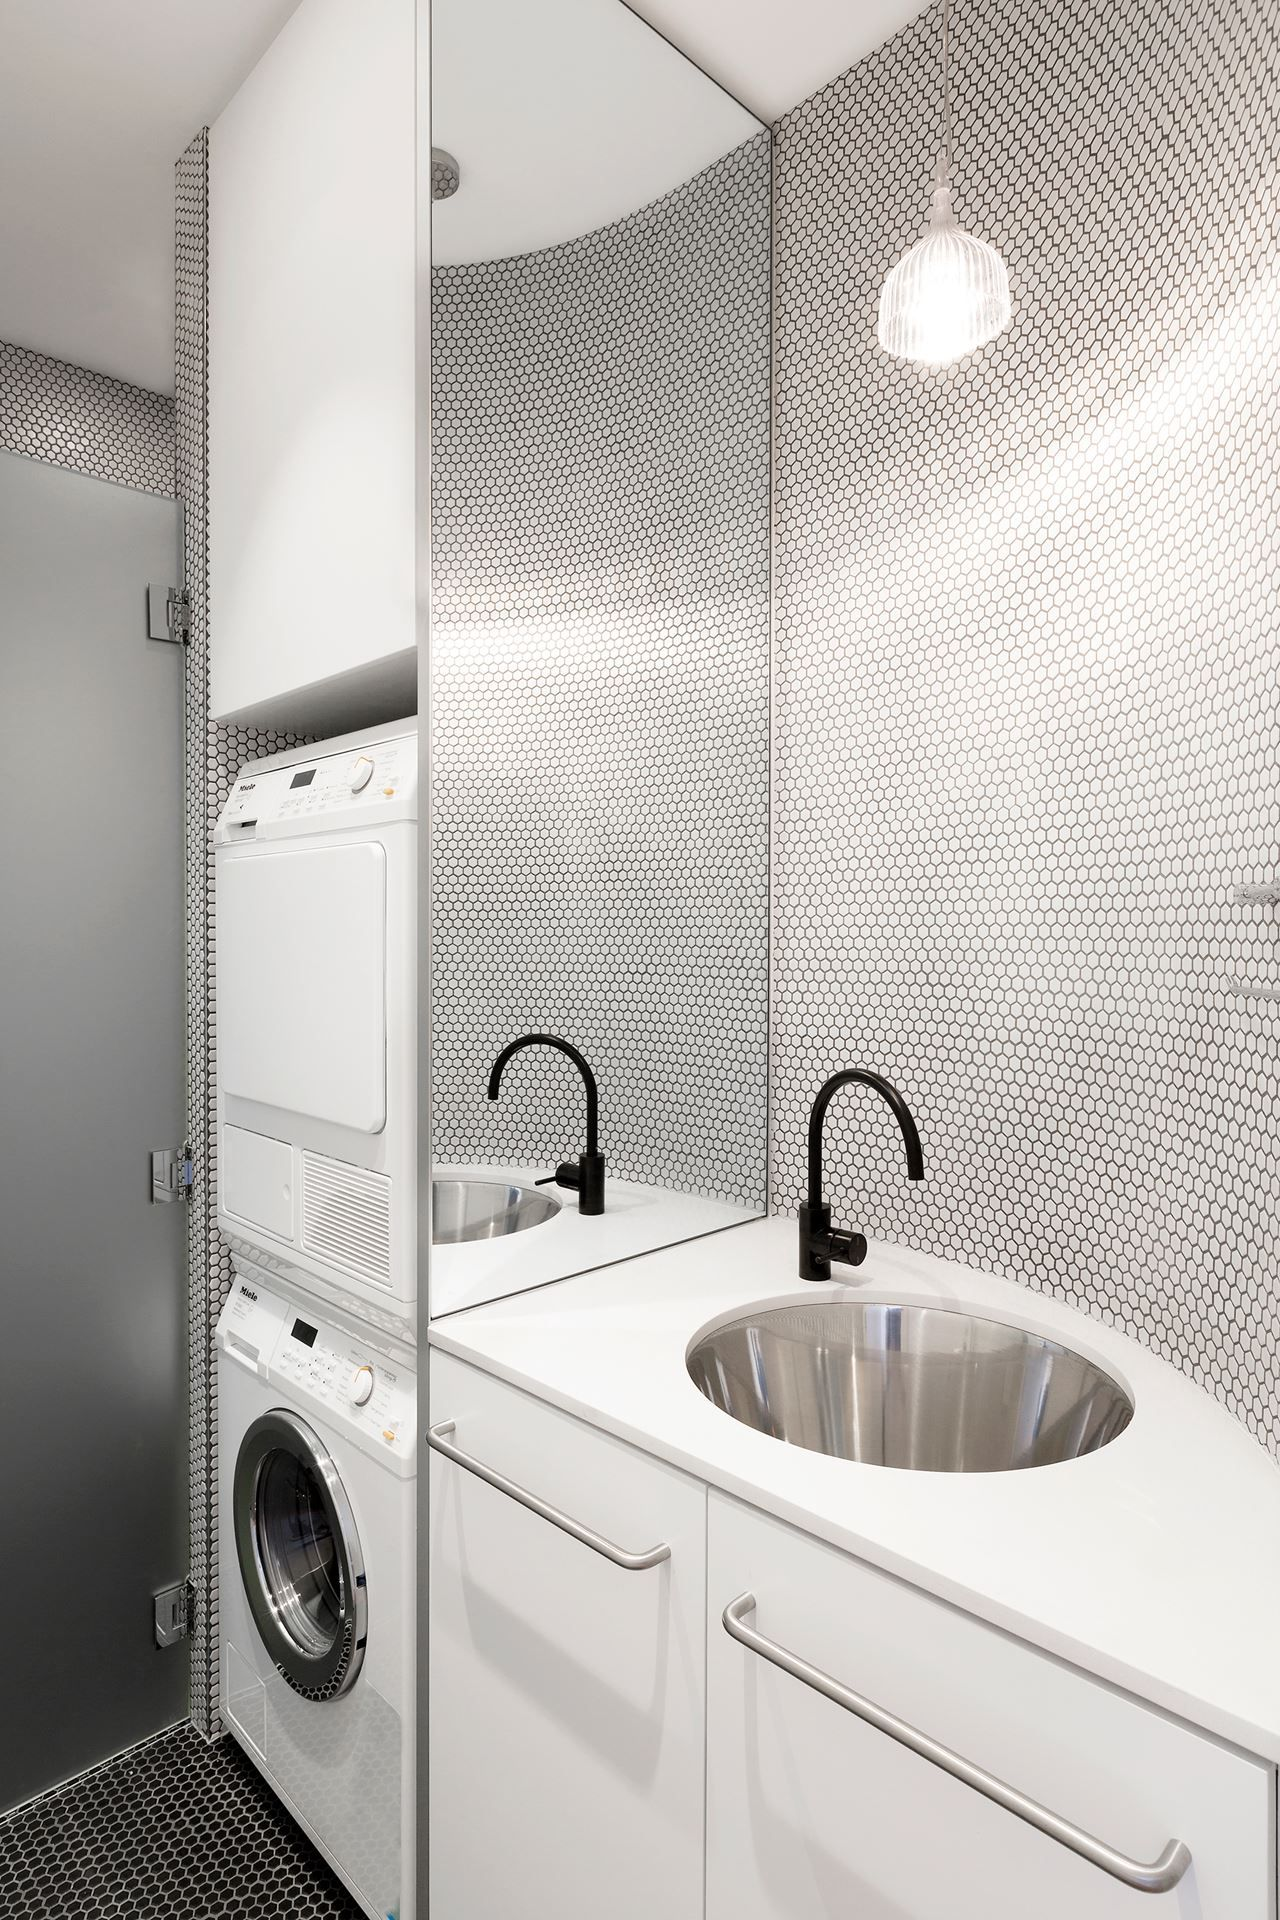 Compact Small Space Laundry Curved Wall White Hexagonal